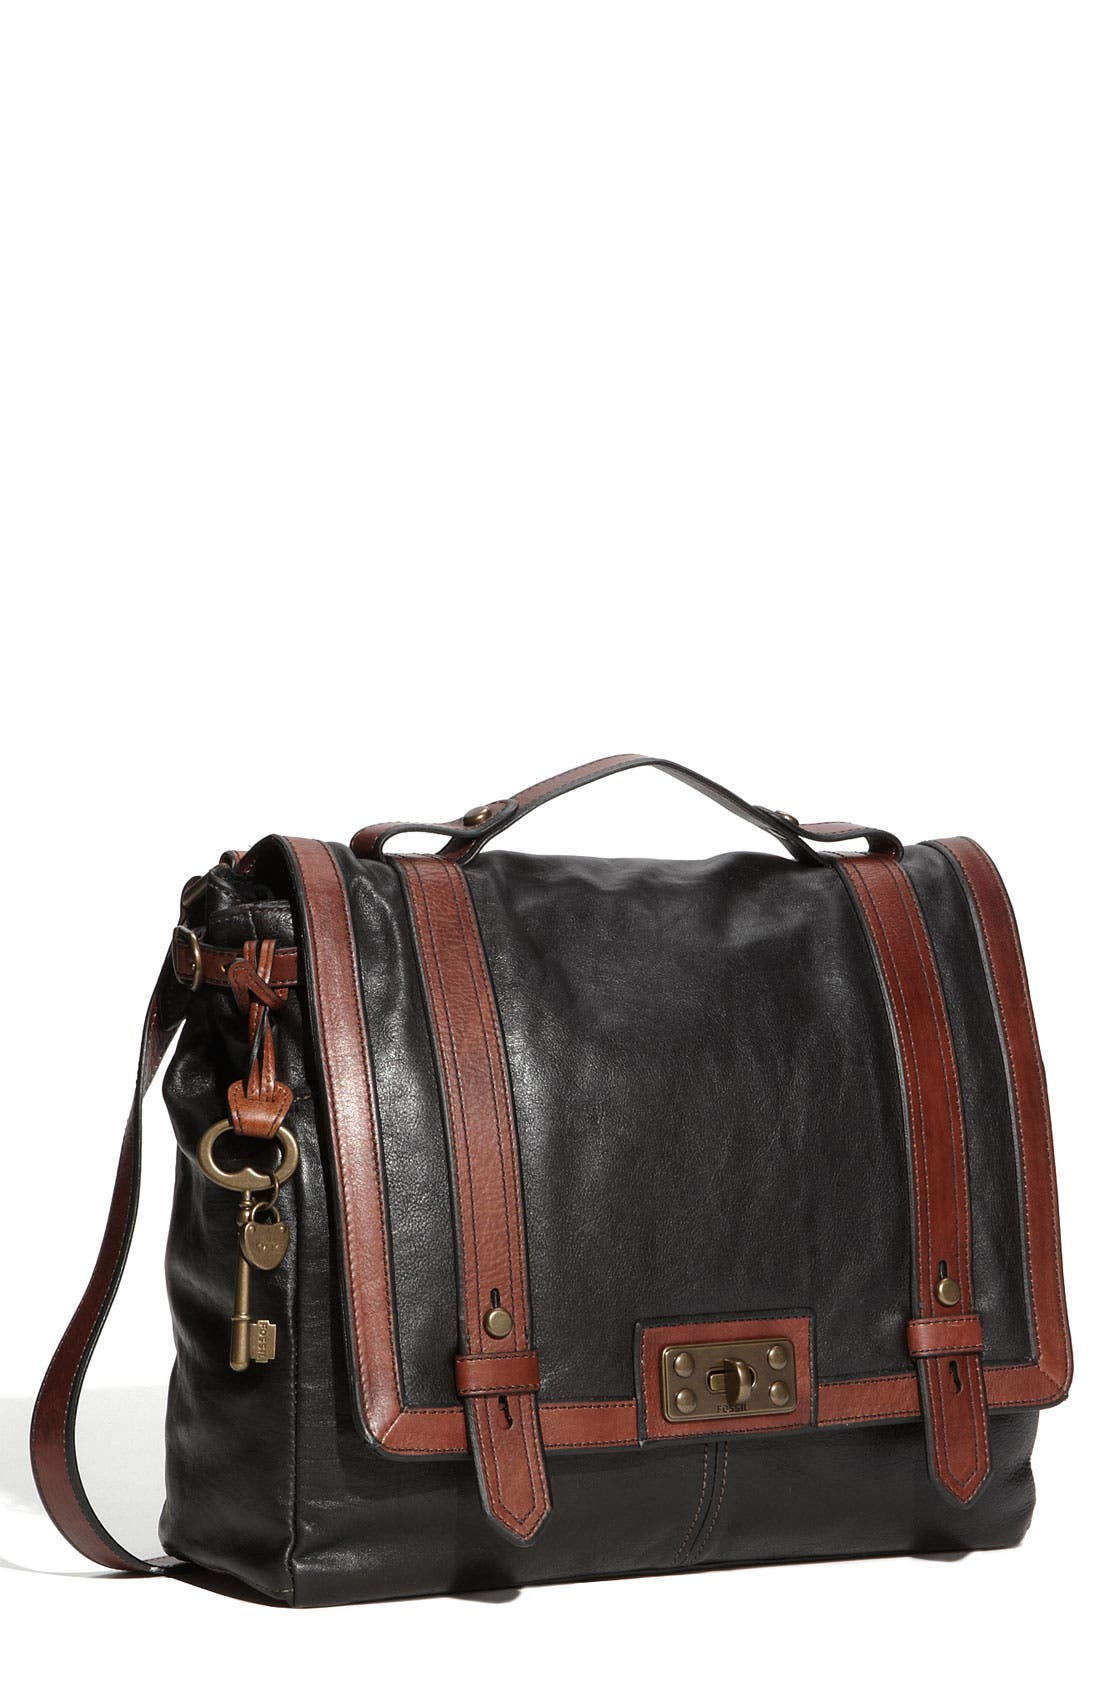 FOSSIL 'Vintage Reissue' Crossbody Bag, Main, color, 010